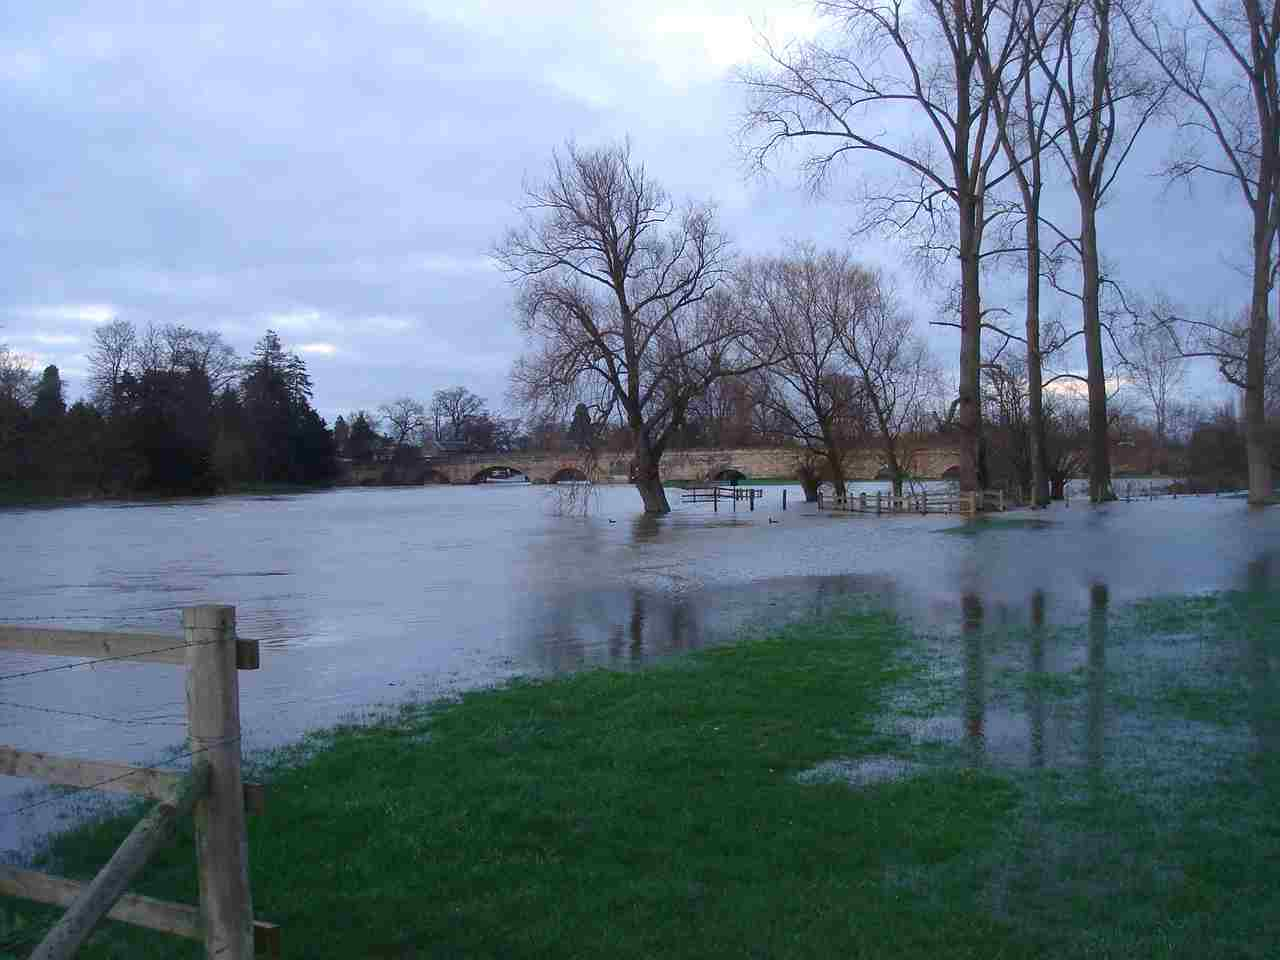 Recent flooding in Wallingford